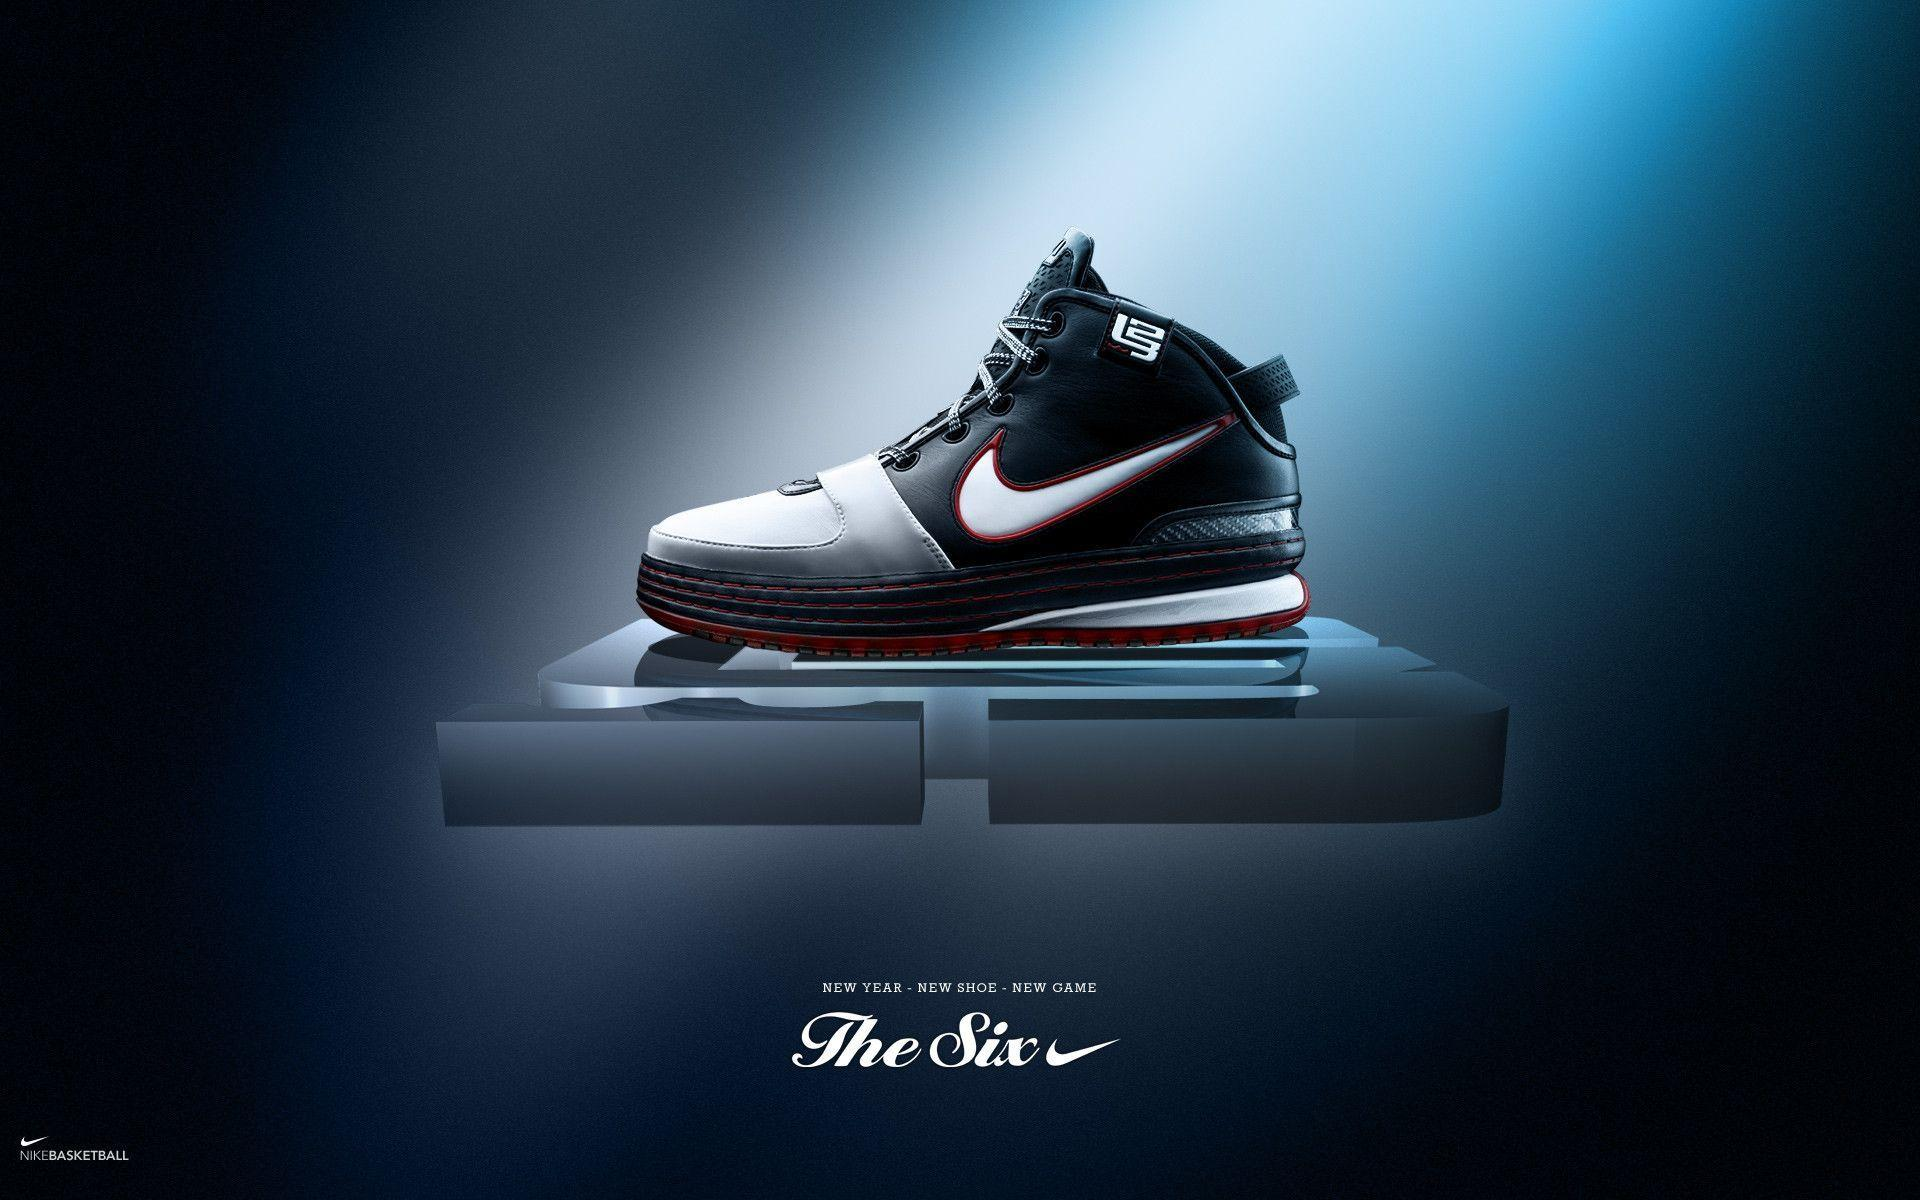 57bccc9f79a Nike LeBron Soldier Wallpapers - Wallpaper Cave